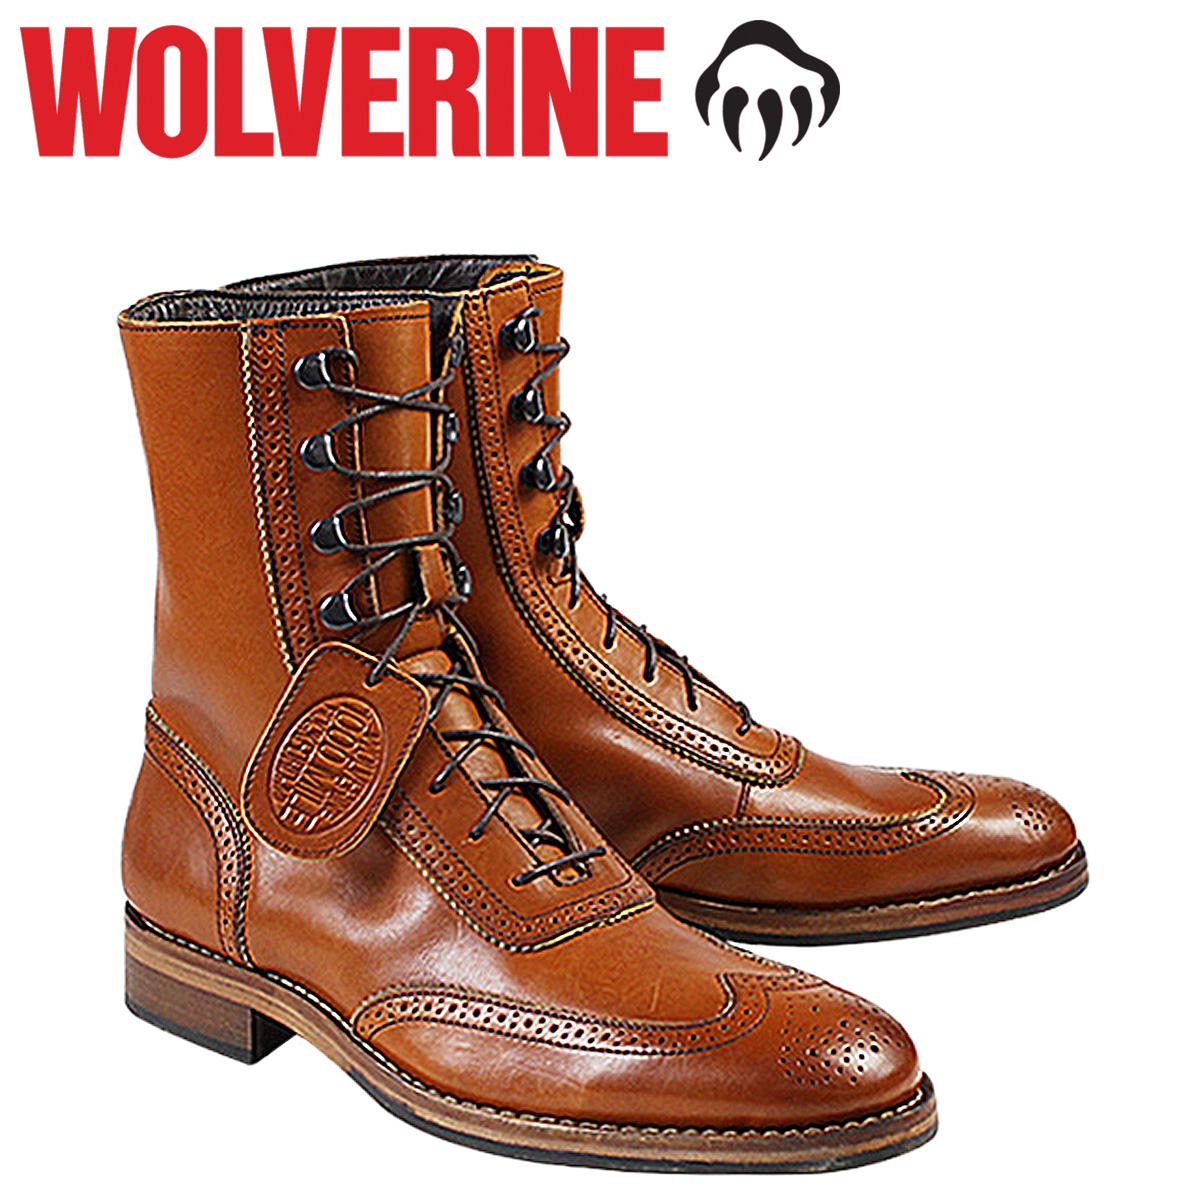 fb0dfffc962 WOLVERINE WINCHESTER 1000 MILE BROGUE BOOT Wolverene 1,000 miles boots D  Wise W06491 tongue work boots men